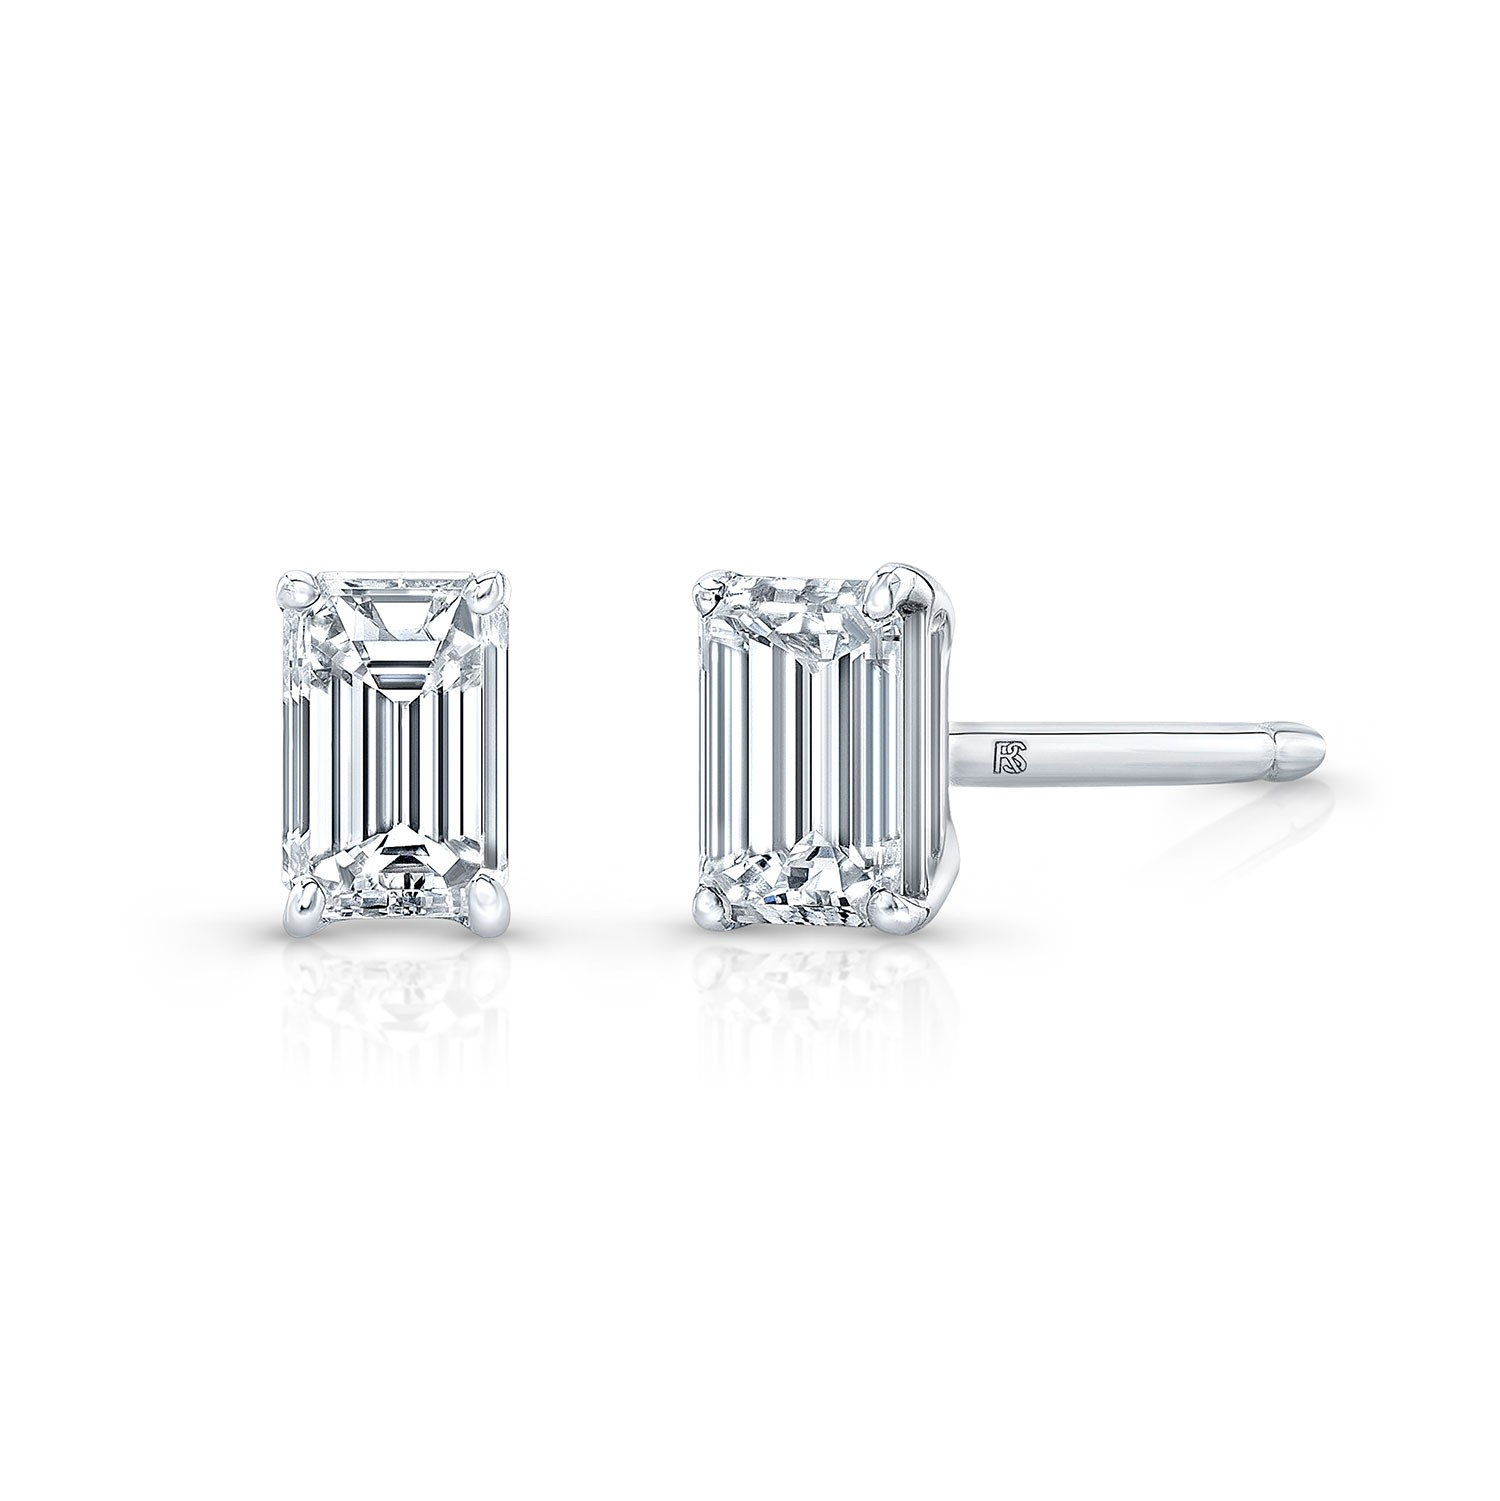 14k White Gold Floating Emerald Cut Diamond Stud Earrings